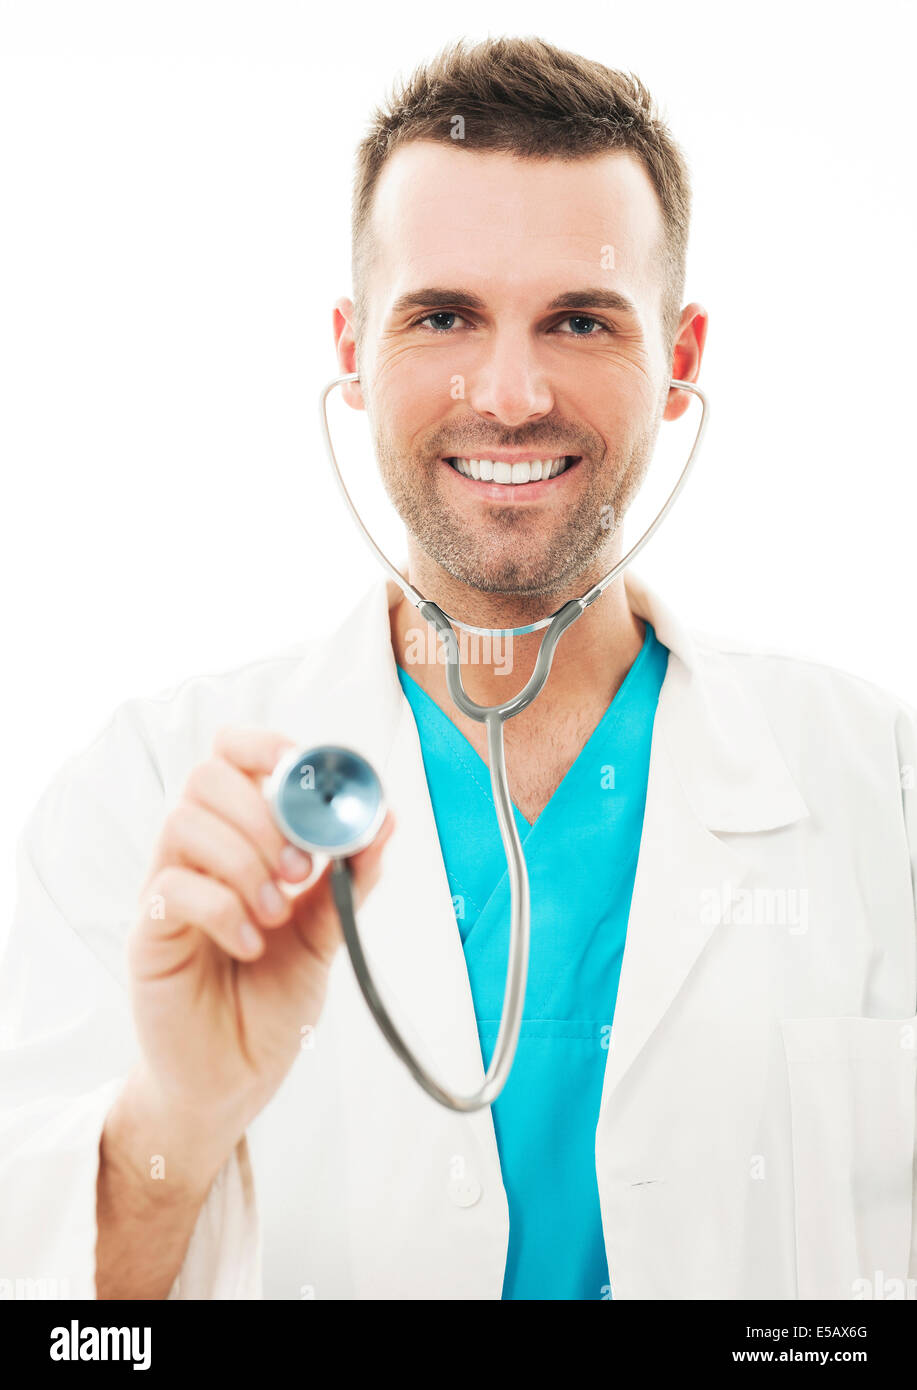 Cheerful doctor with stethoscope Debica, Poland - Stock Image